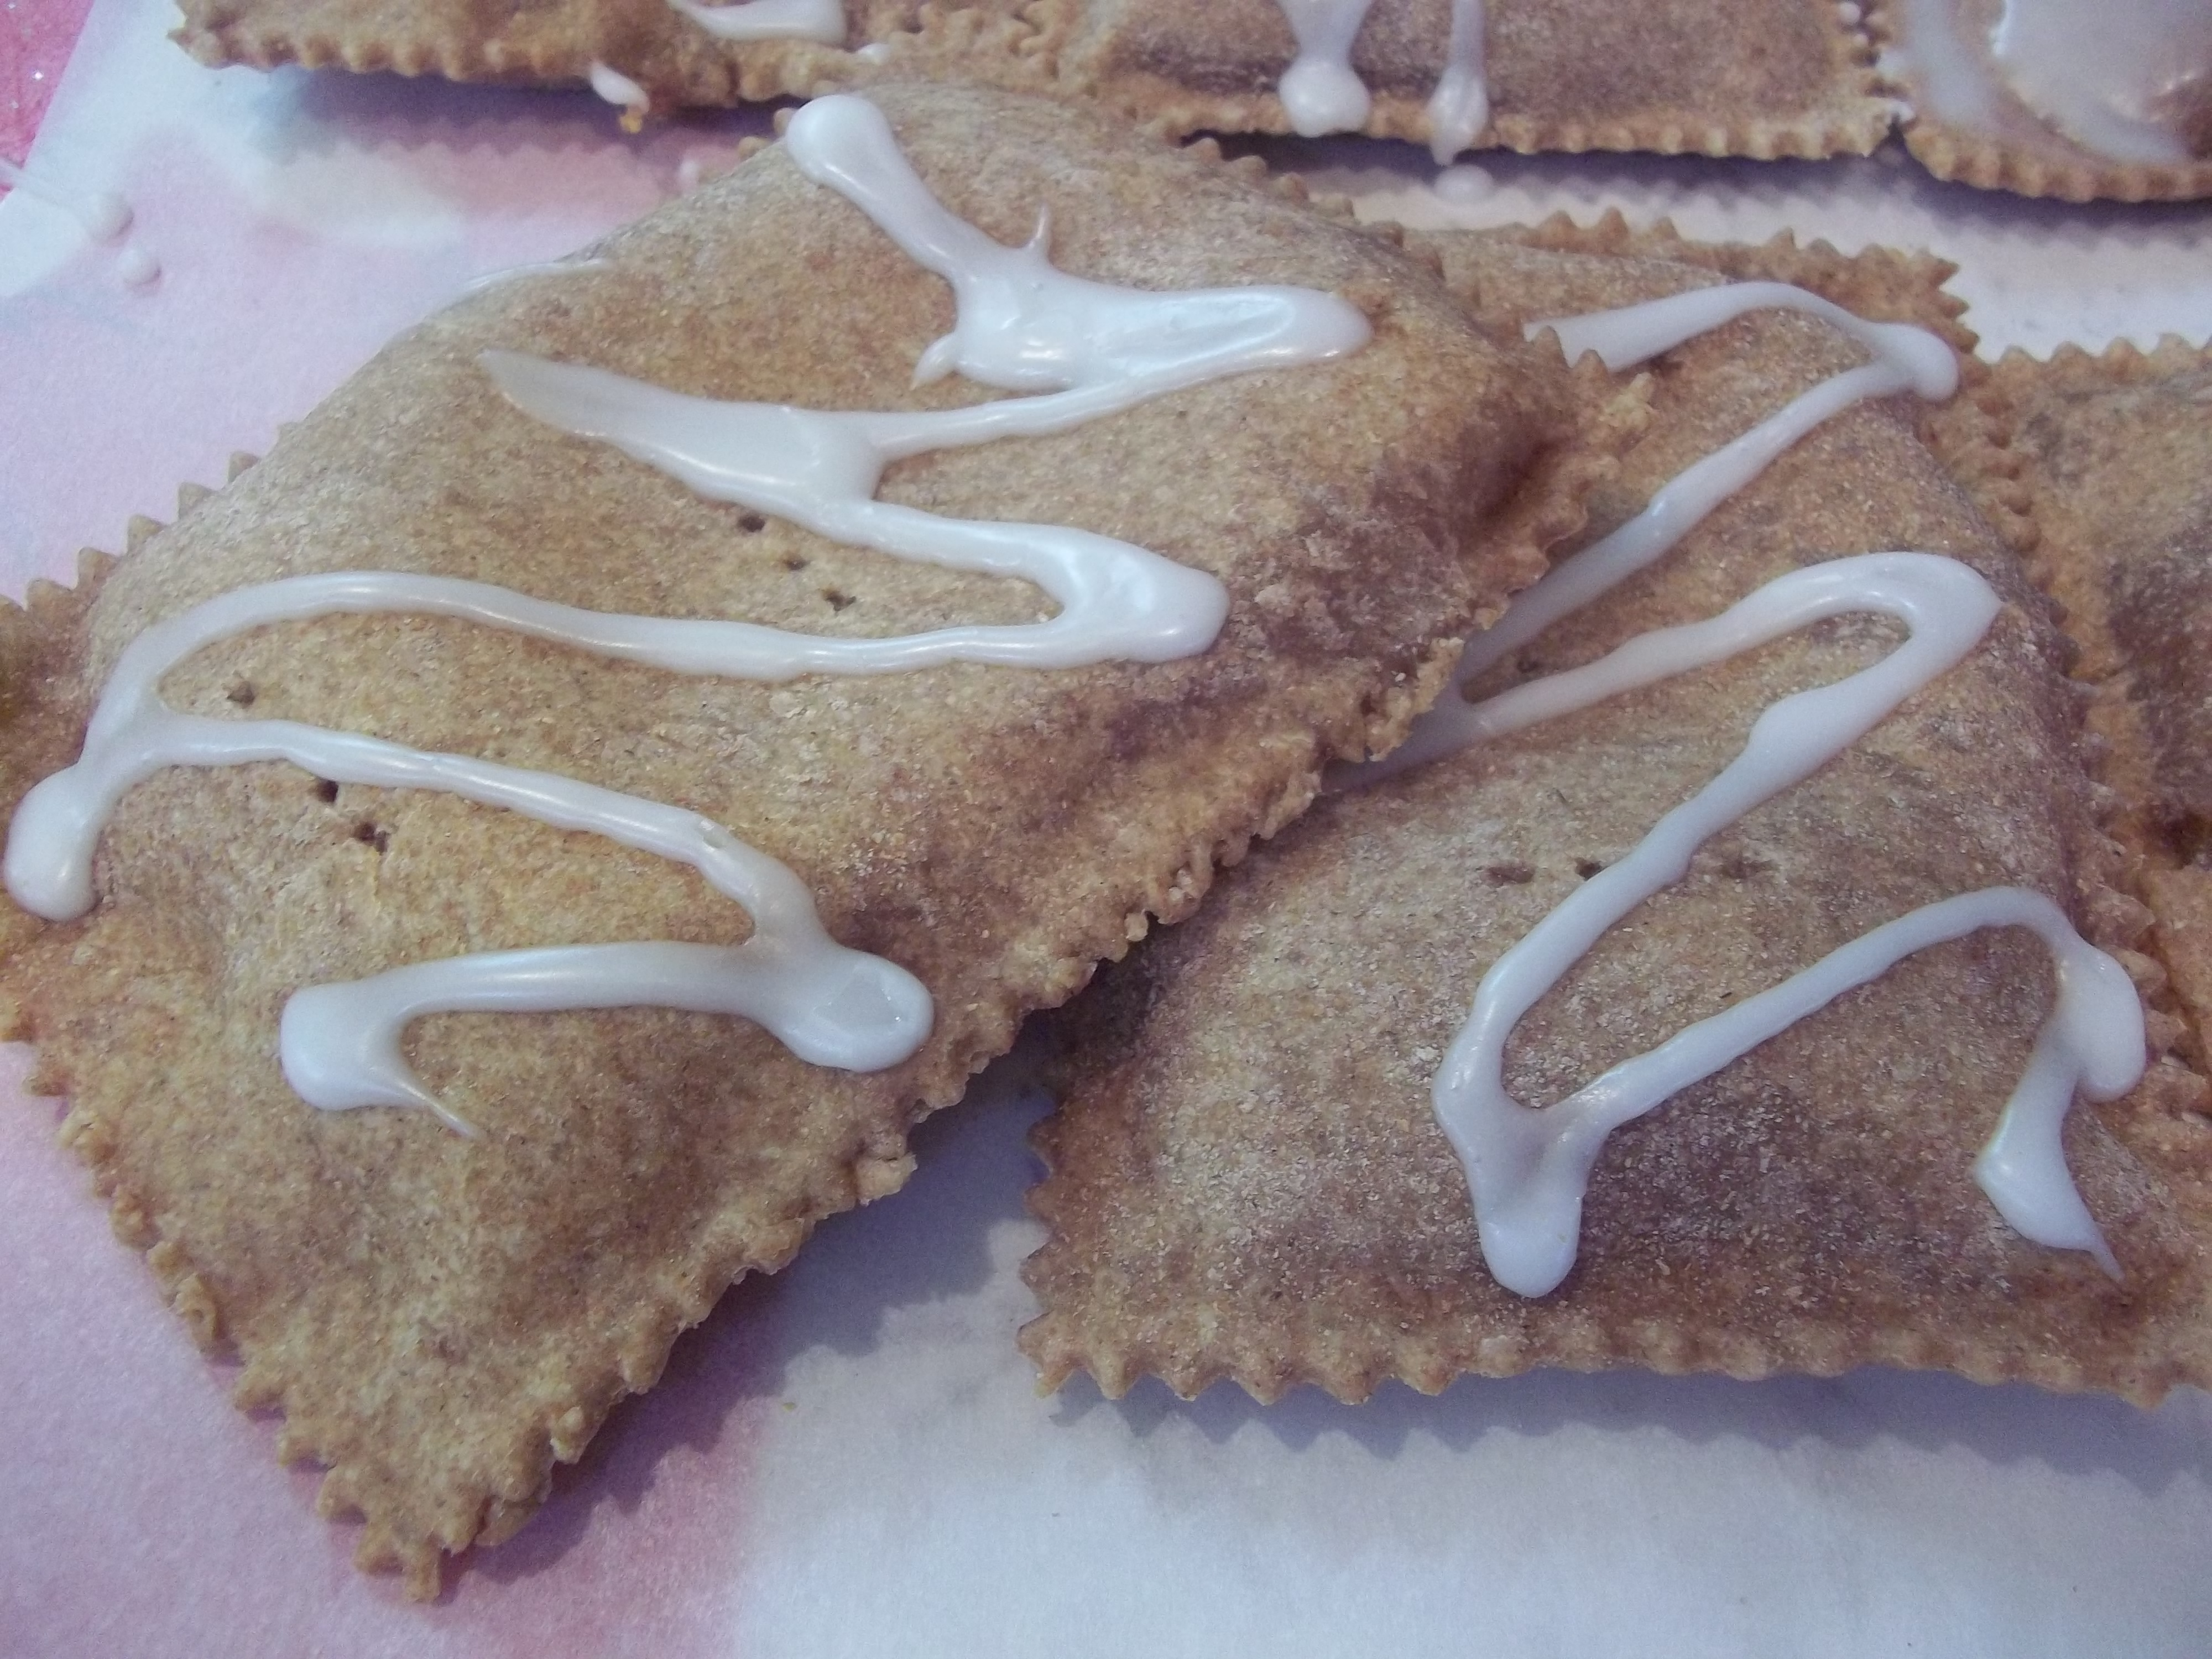 I Receive Updates From Another Food Blog Via Facebook Called Smitten Kitchen.  Their Recipe Last Spring For Homemade Pop Tarts Caught My Eye.